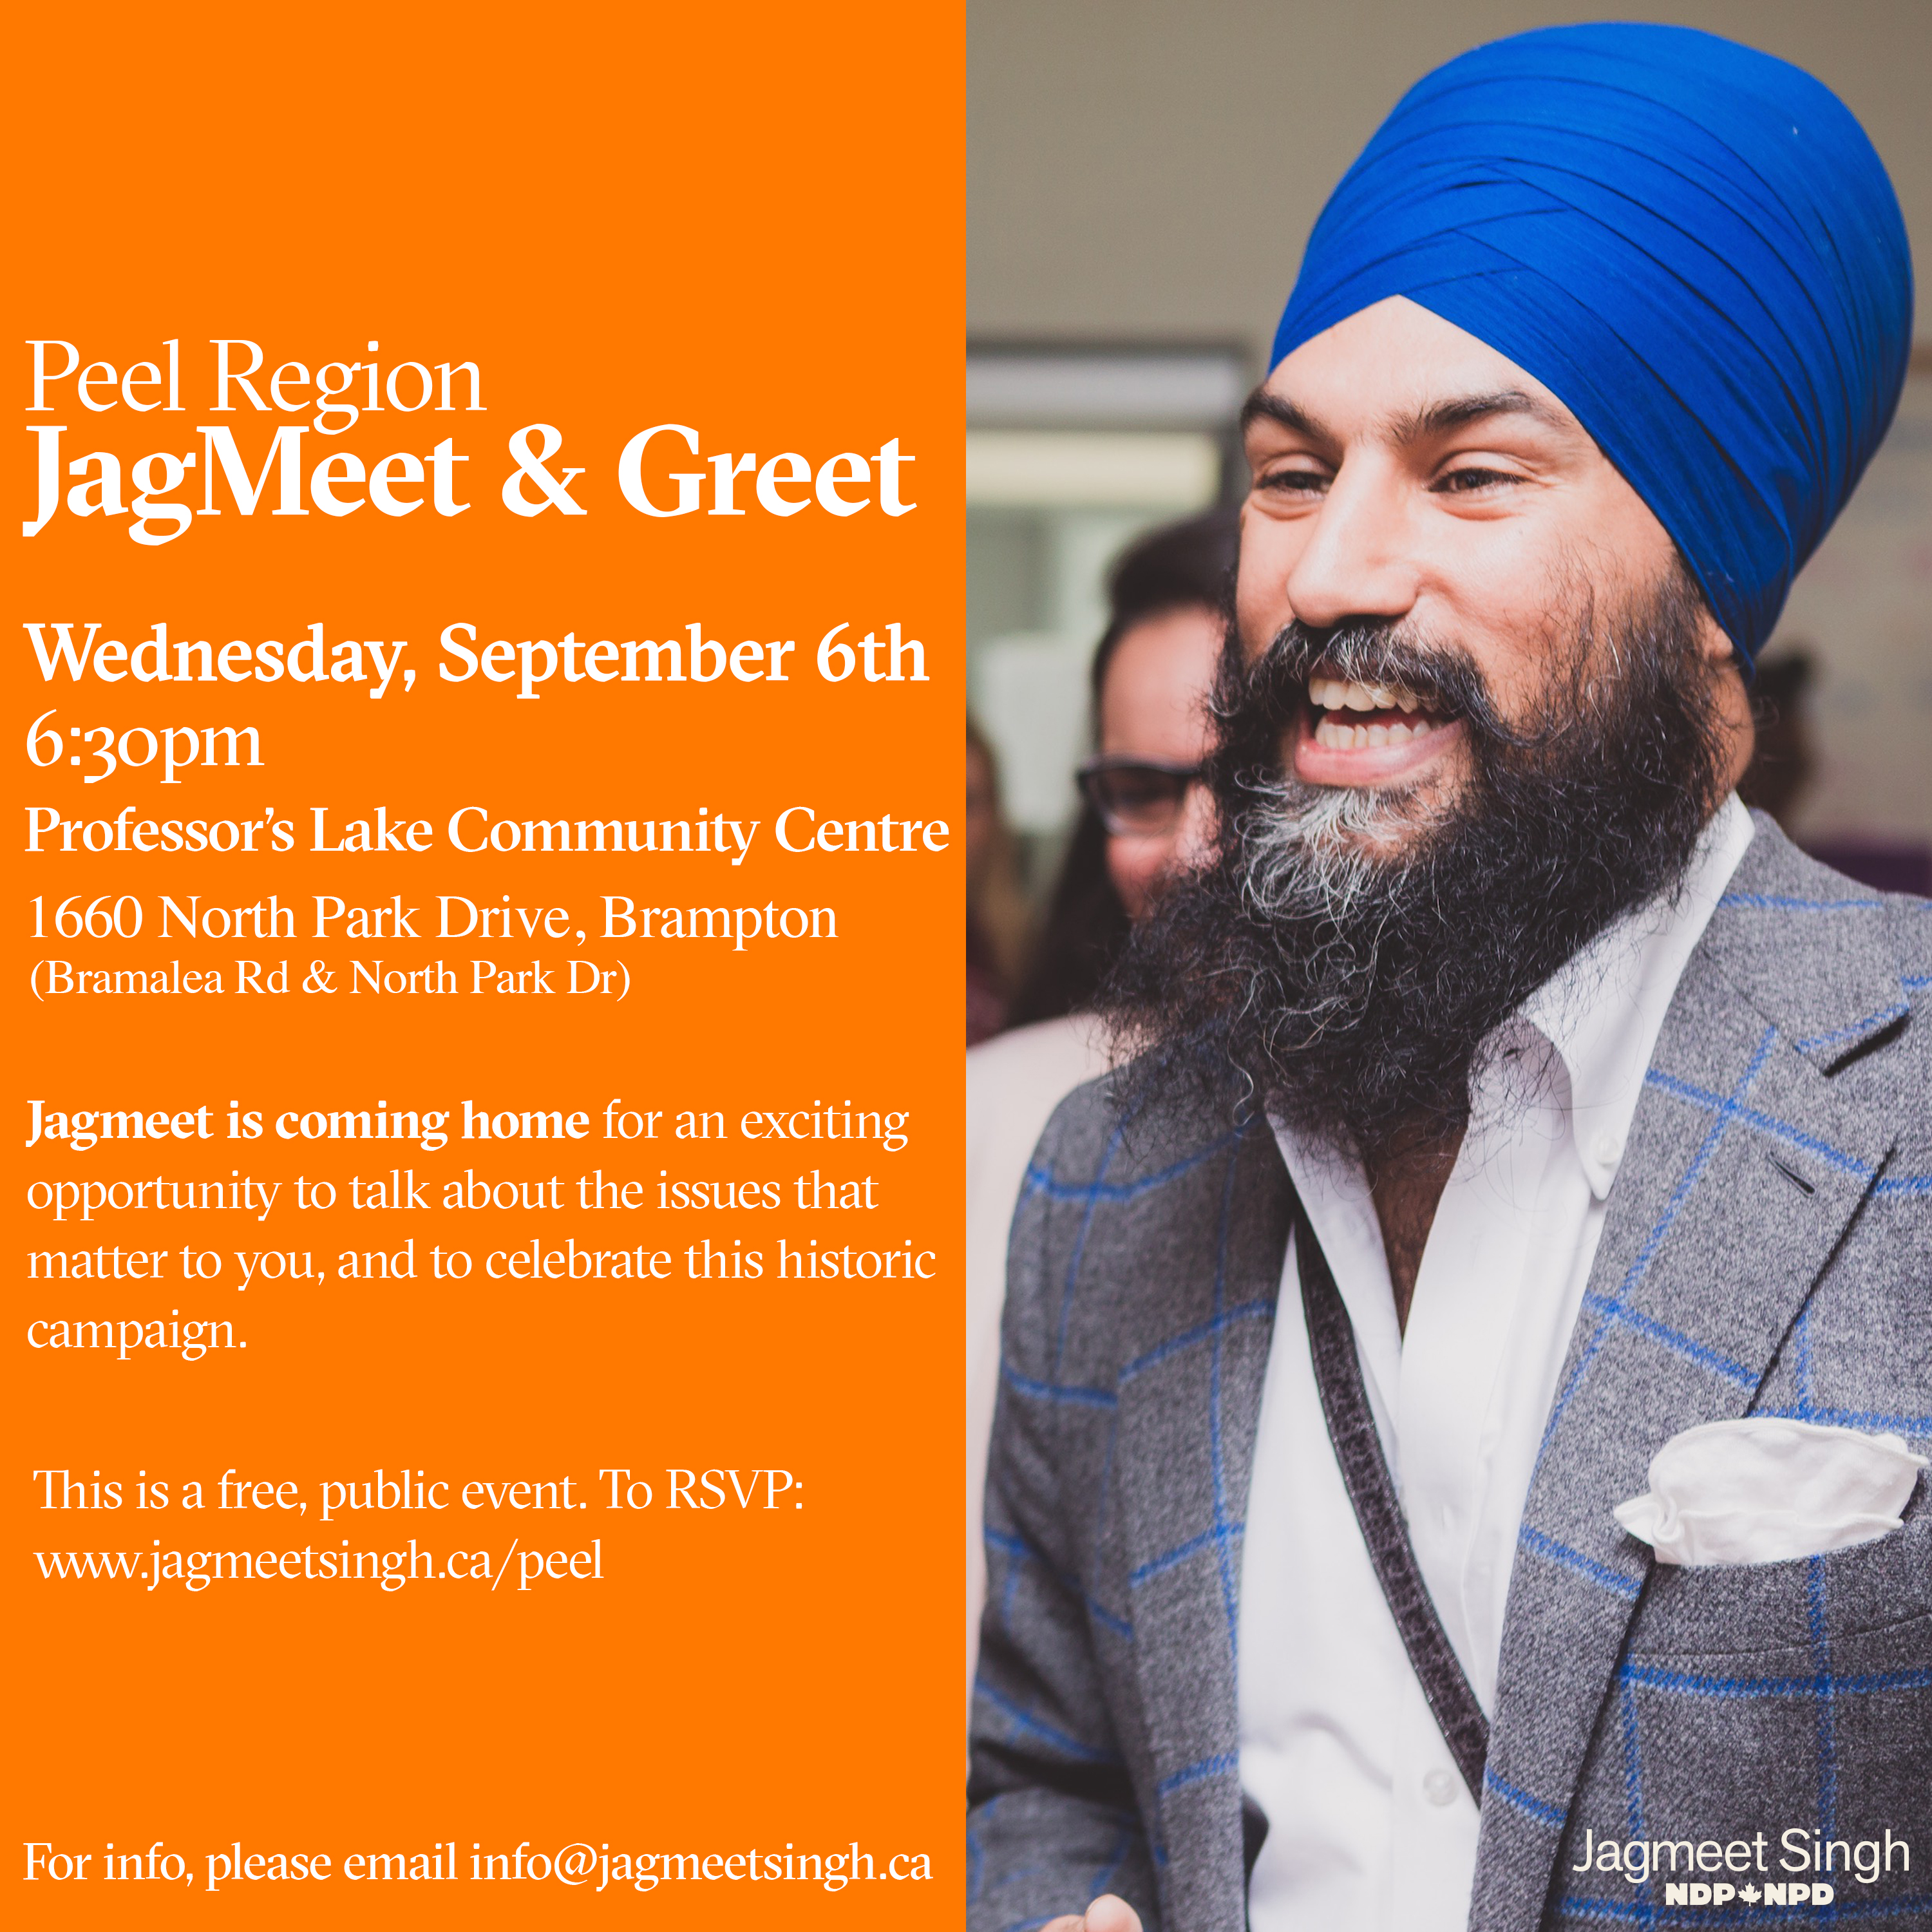 peel_region_jagmeet-and-greet.jpg